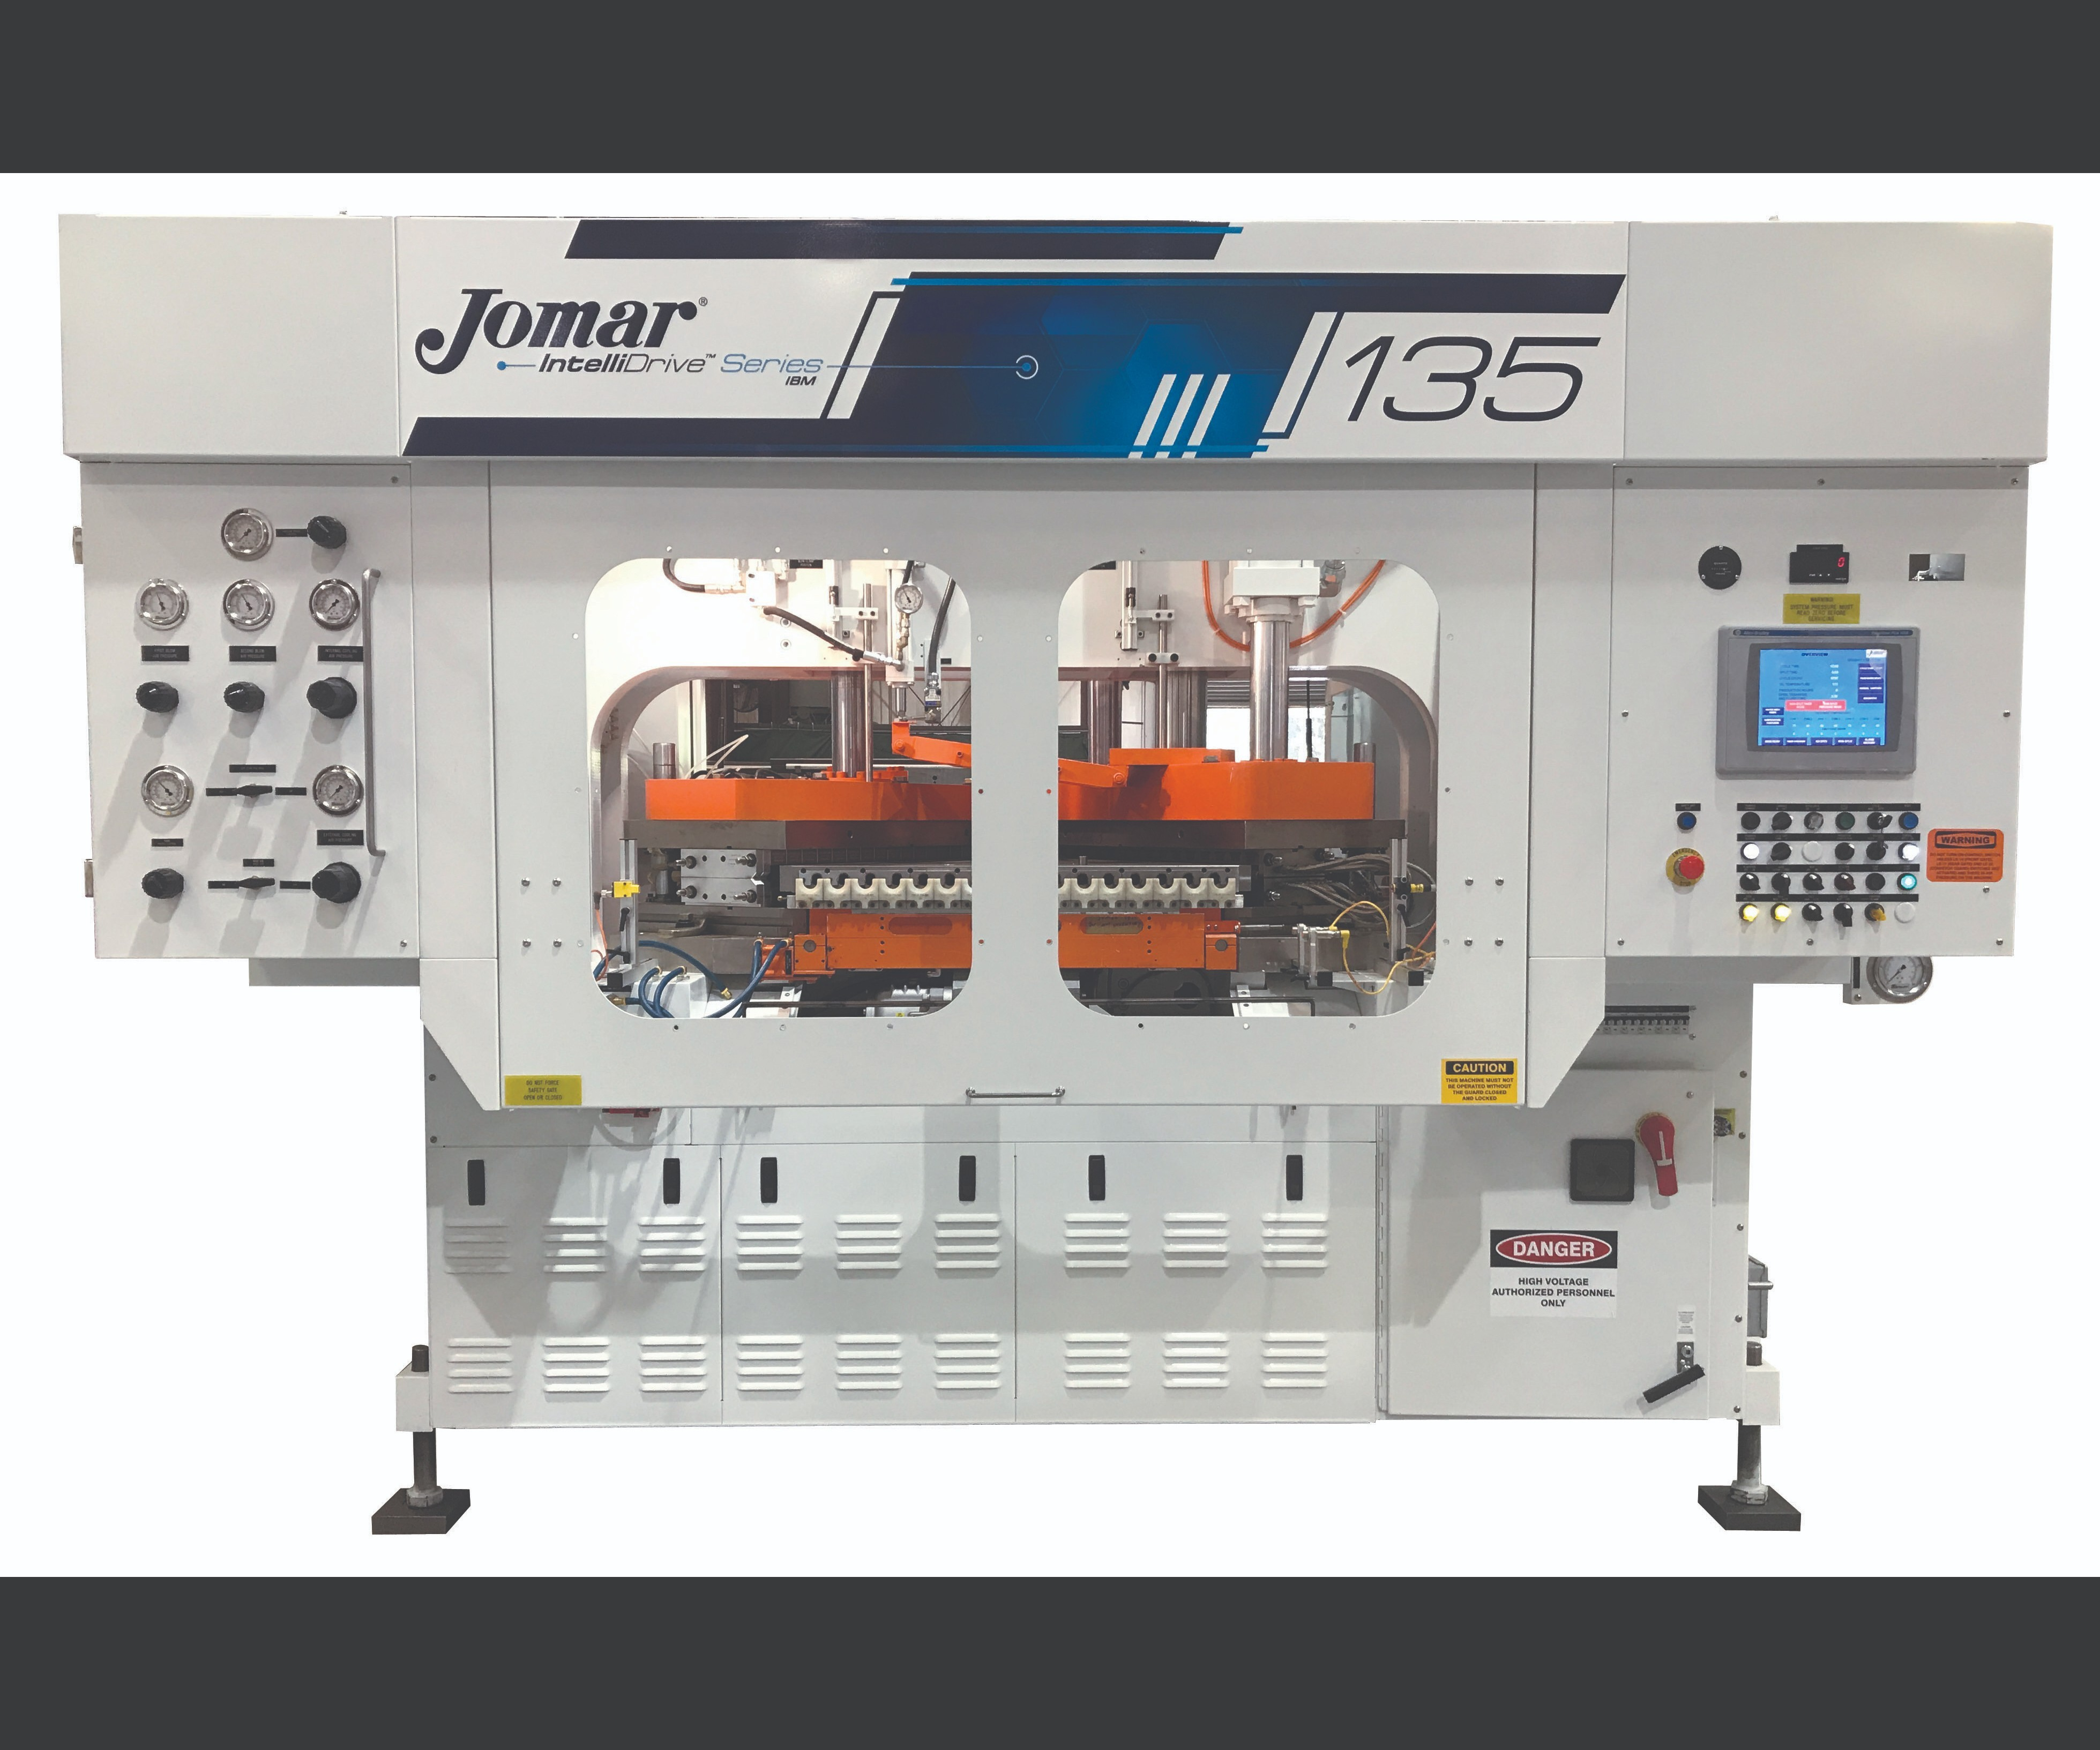 Jomar IntelliDrive injection-blow molding machines with Bosch Rexroth VFD on the hydraulic pump.